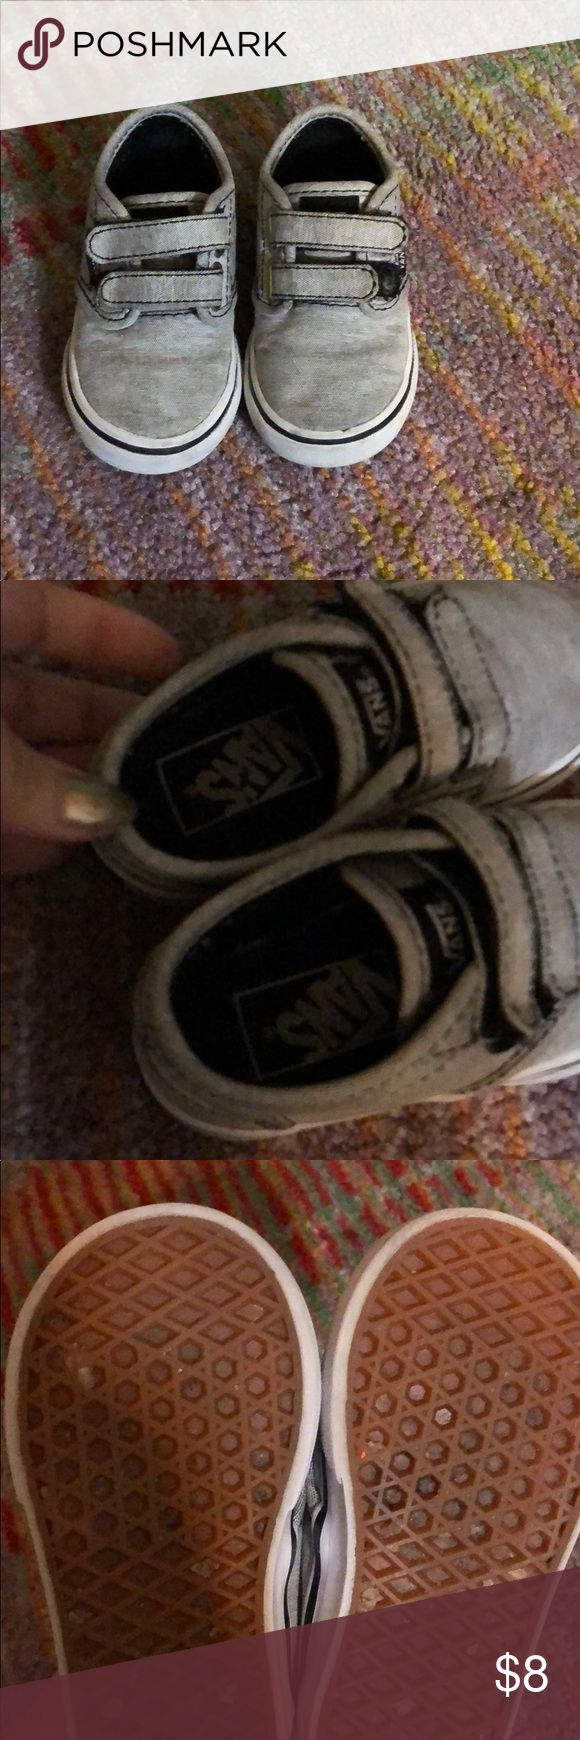 *SALE* 3 for $15 - vans toddler shoes sz 4.5 Gently used light gray vans toddler shoes size 4.5 Vans Shoes Sneakers